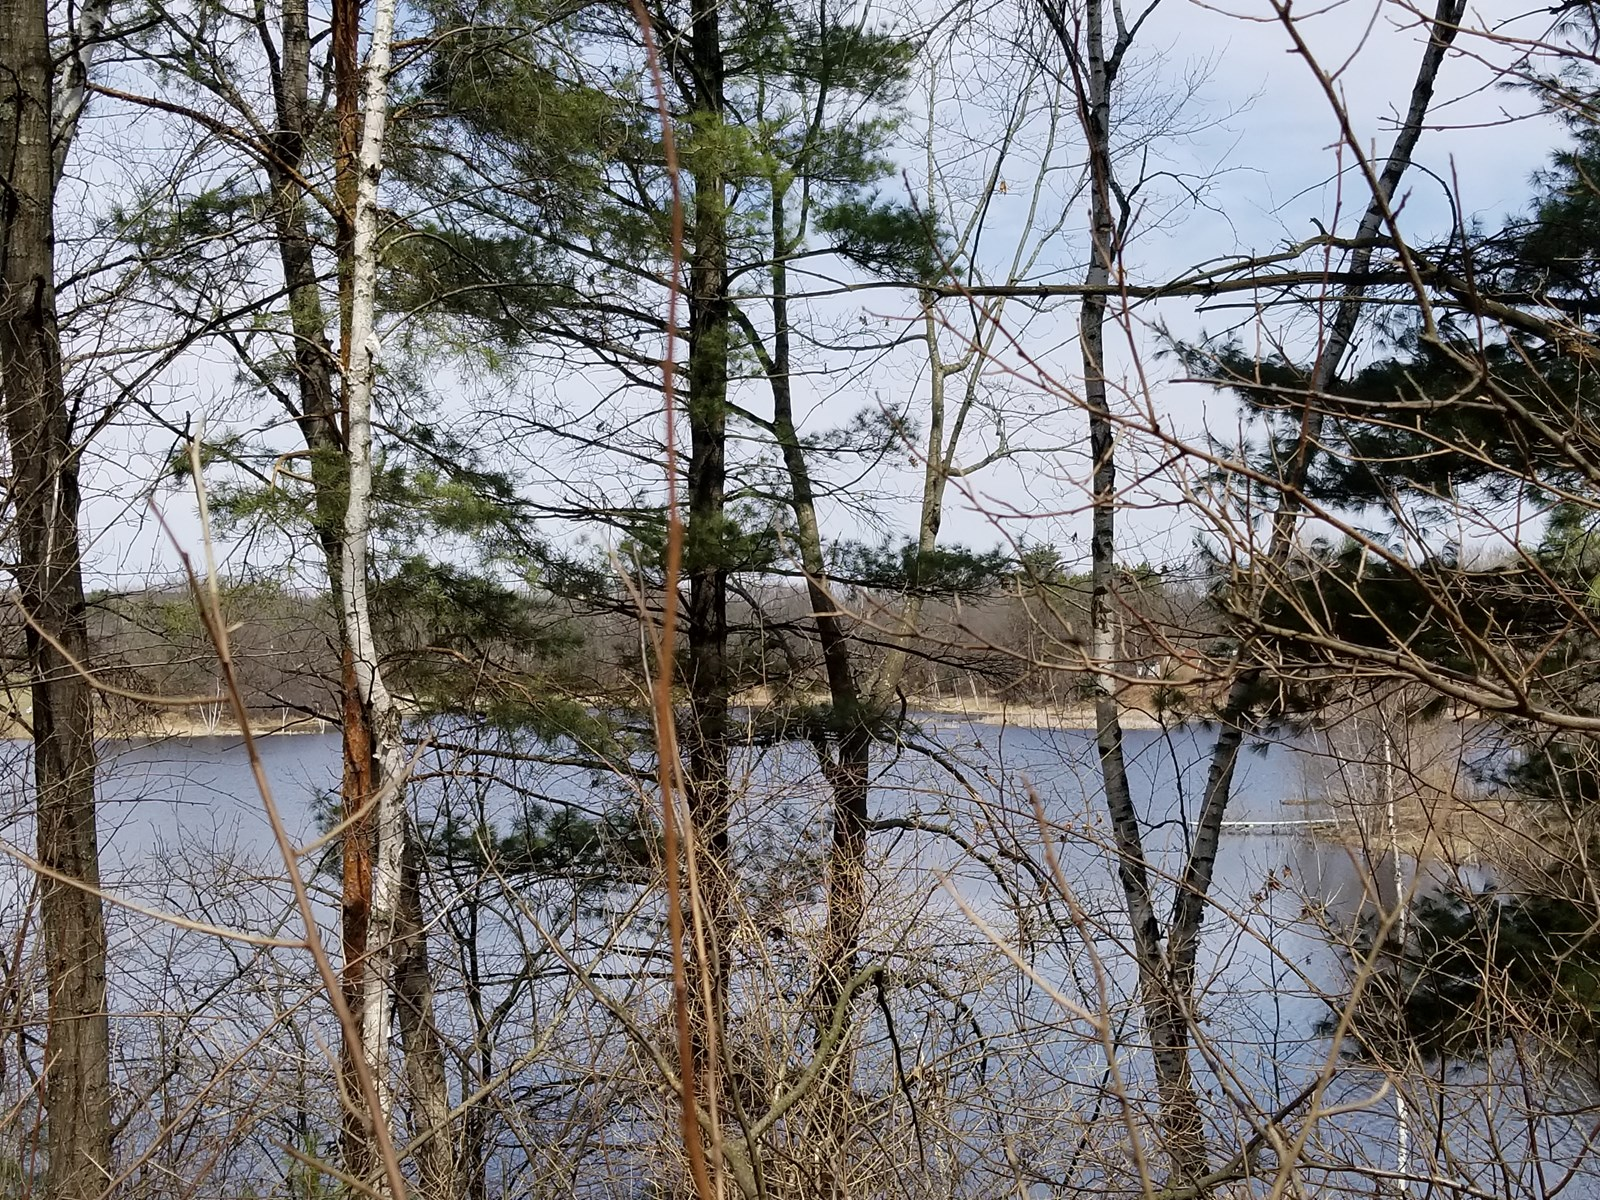 Vacant Land for Sale on Old Taylor Lake in Waupaca WI